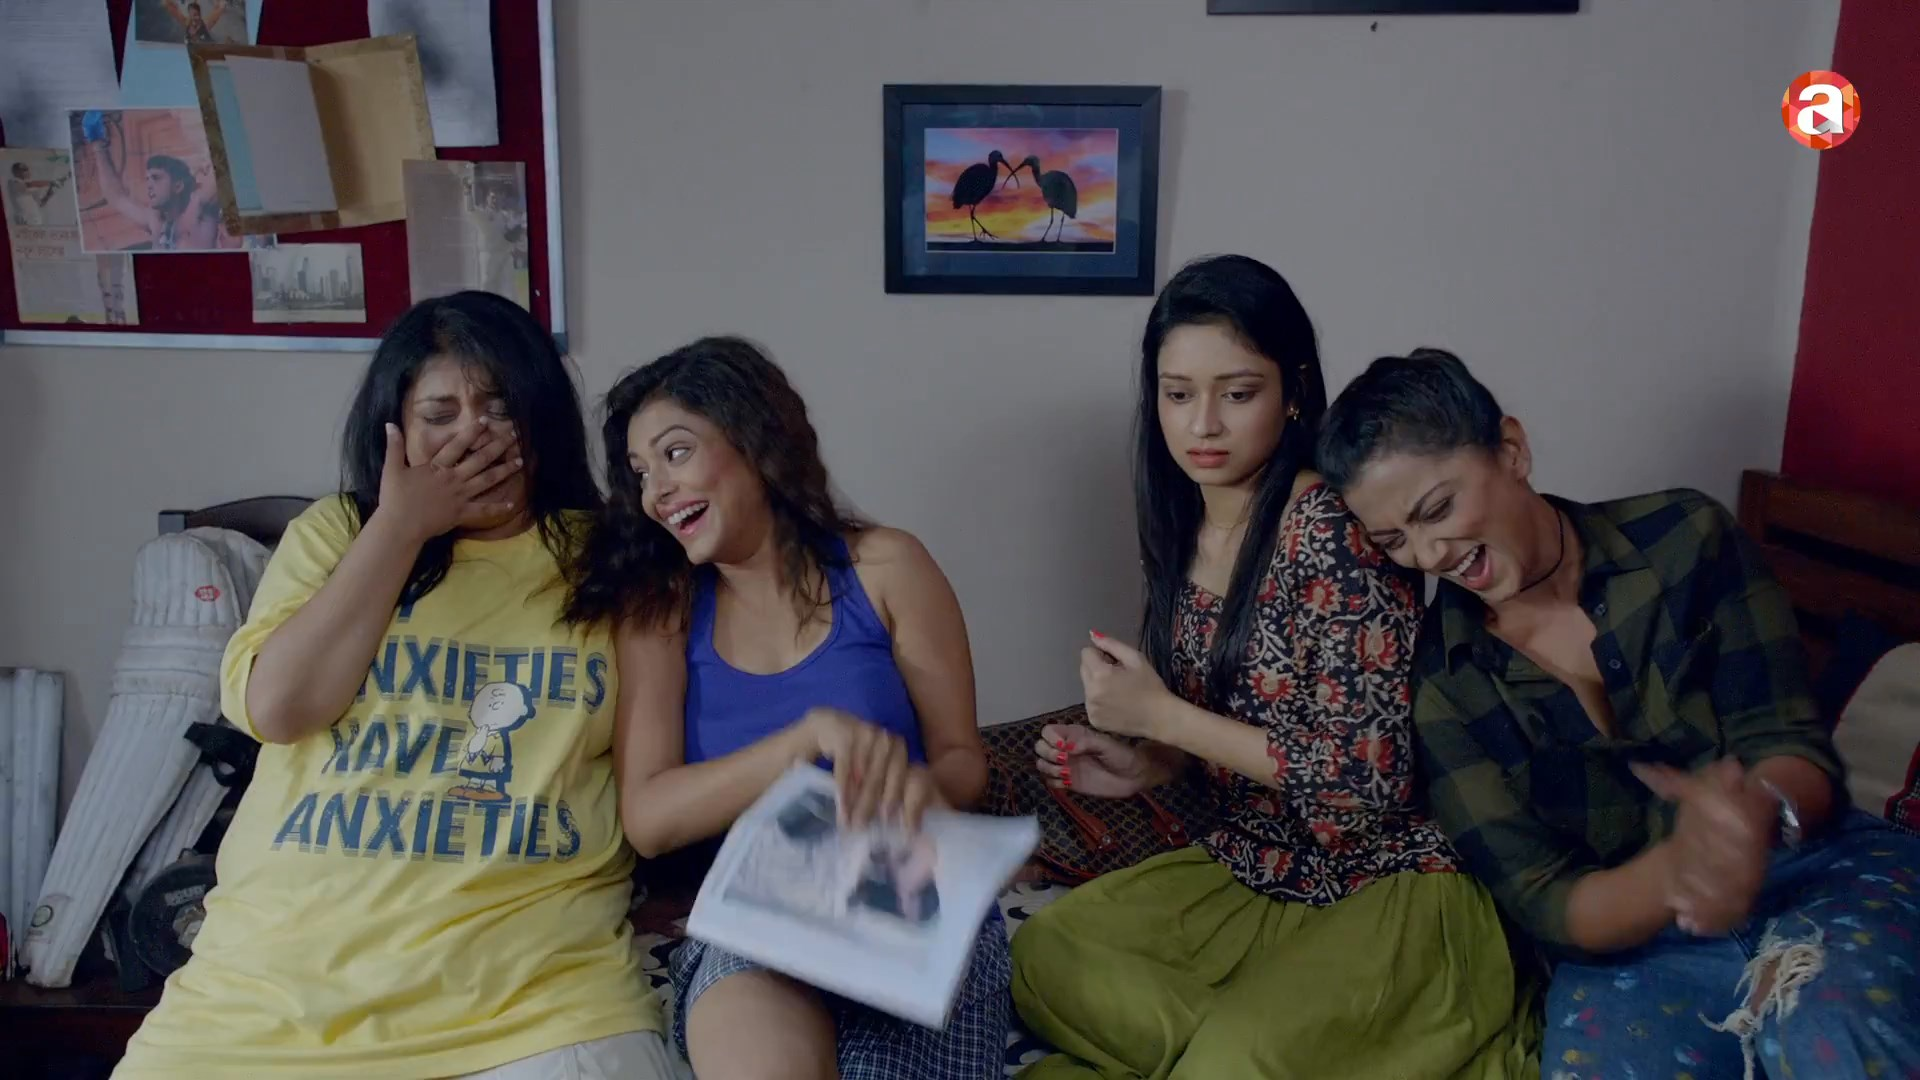 VMS01 6 - 18+ Virgin Mohito 2018 S01 Bangali Addatimes Originals Complete Web Series 480p HDRip 400MB x264 AAC